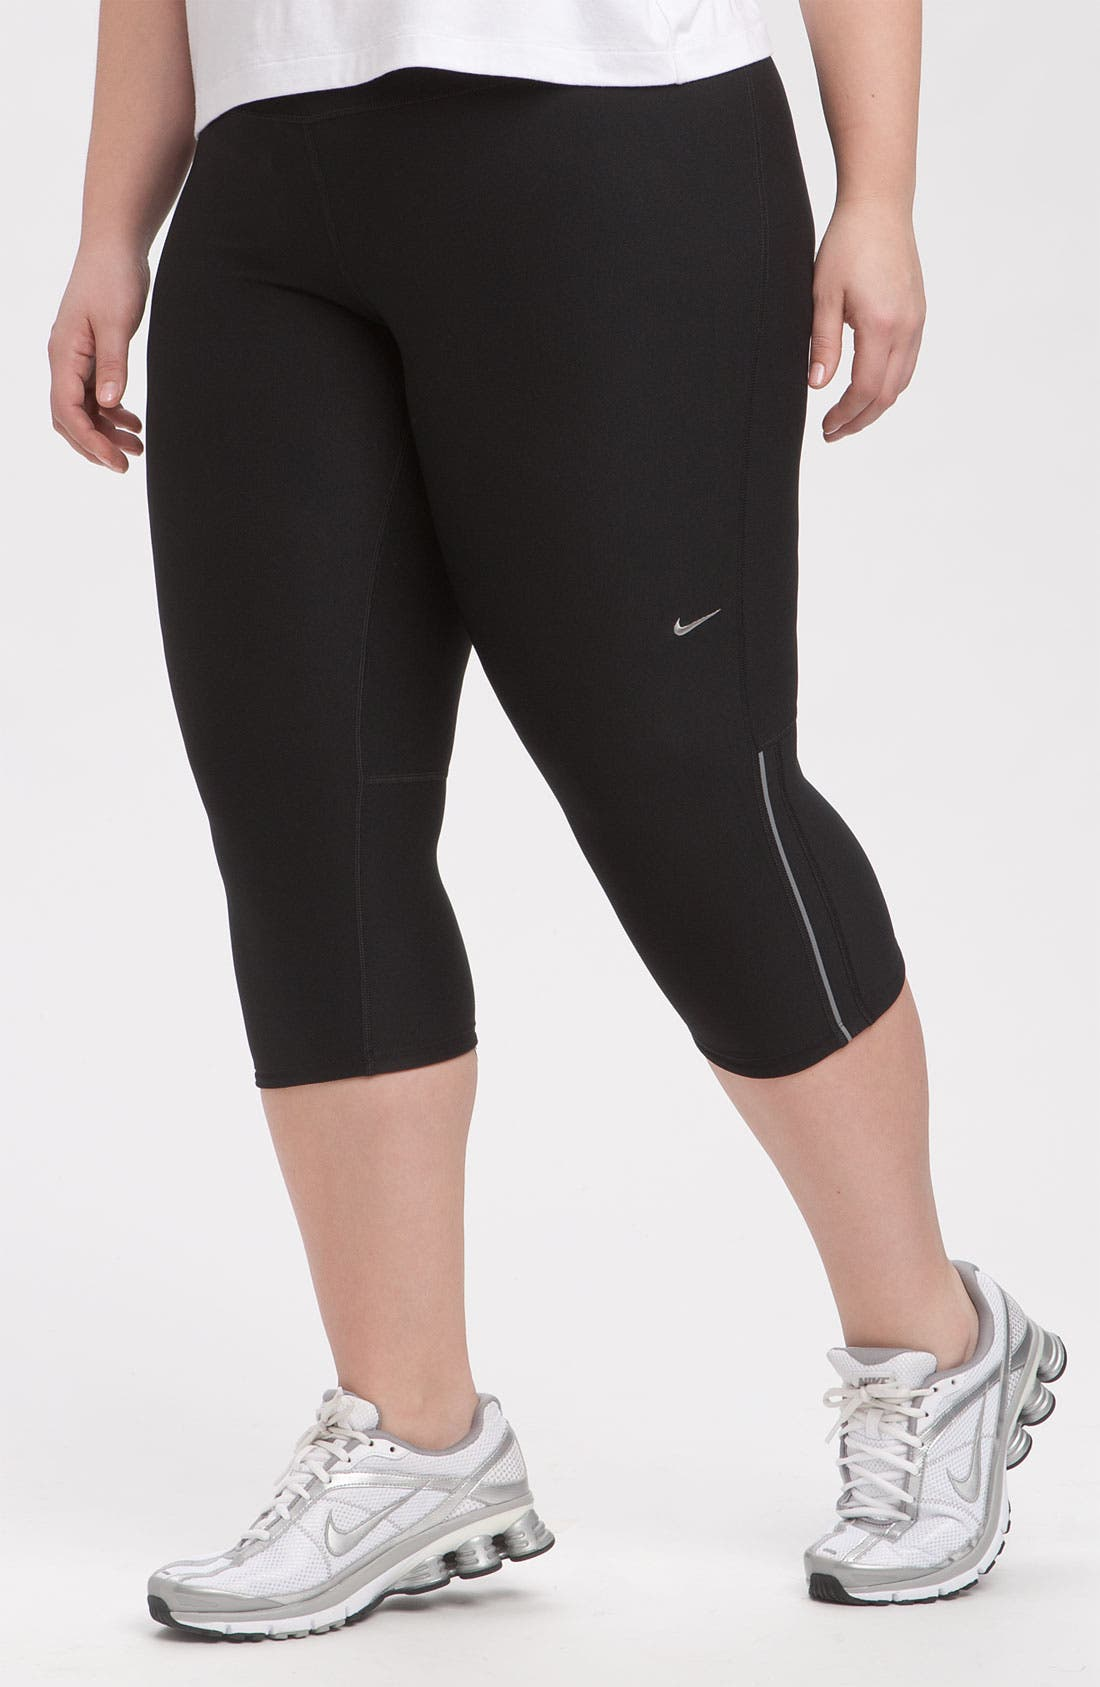 Alternate Image 1 Selected - Nike 'Filament' Capris (Plus Size)